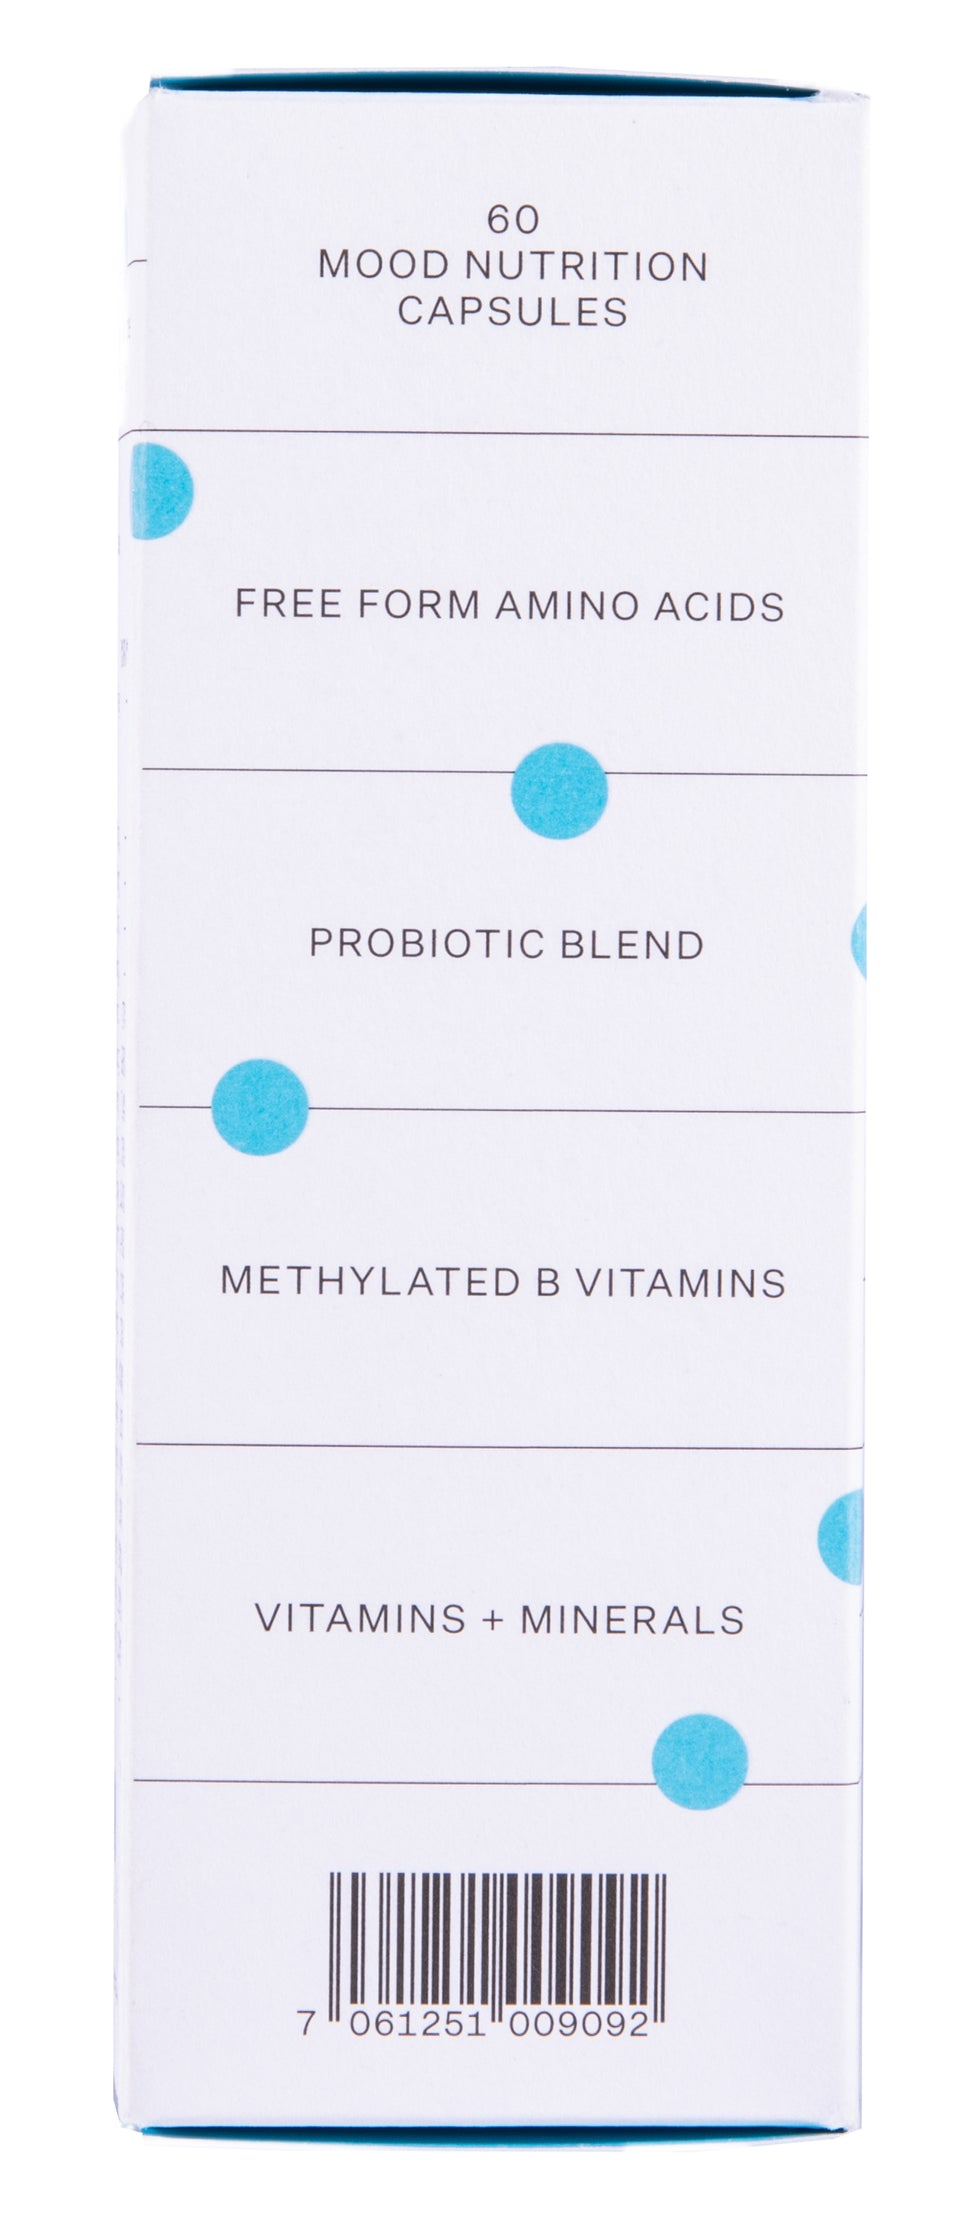 No chemicals, no fillers, no allergens vegan and planet friendly supplements to reduce tiredness and balance hormones